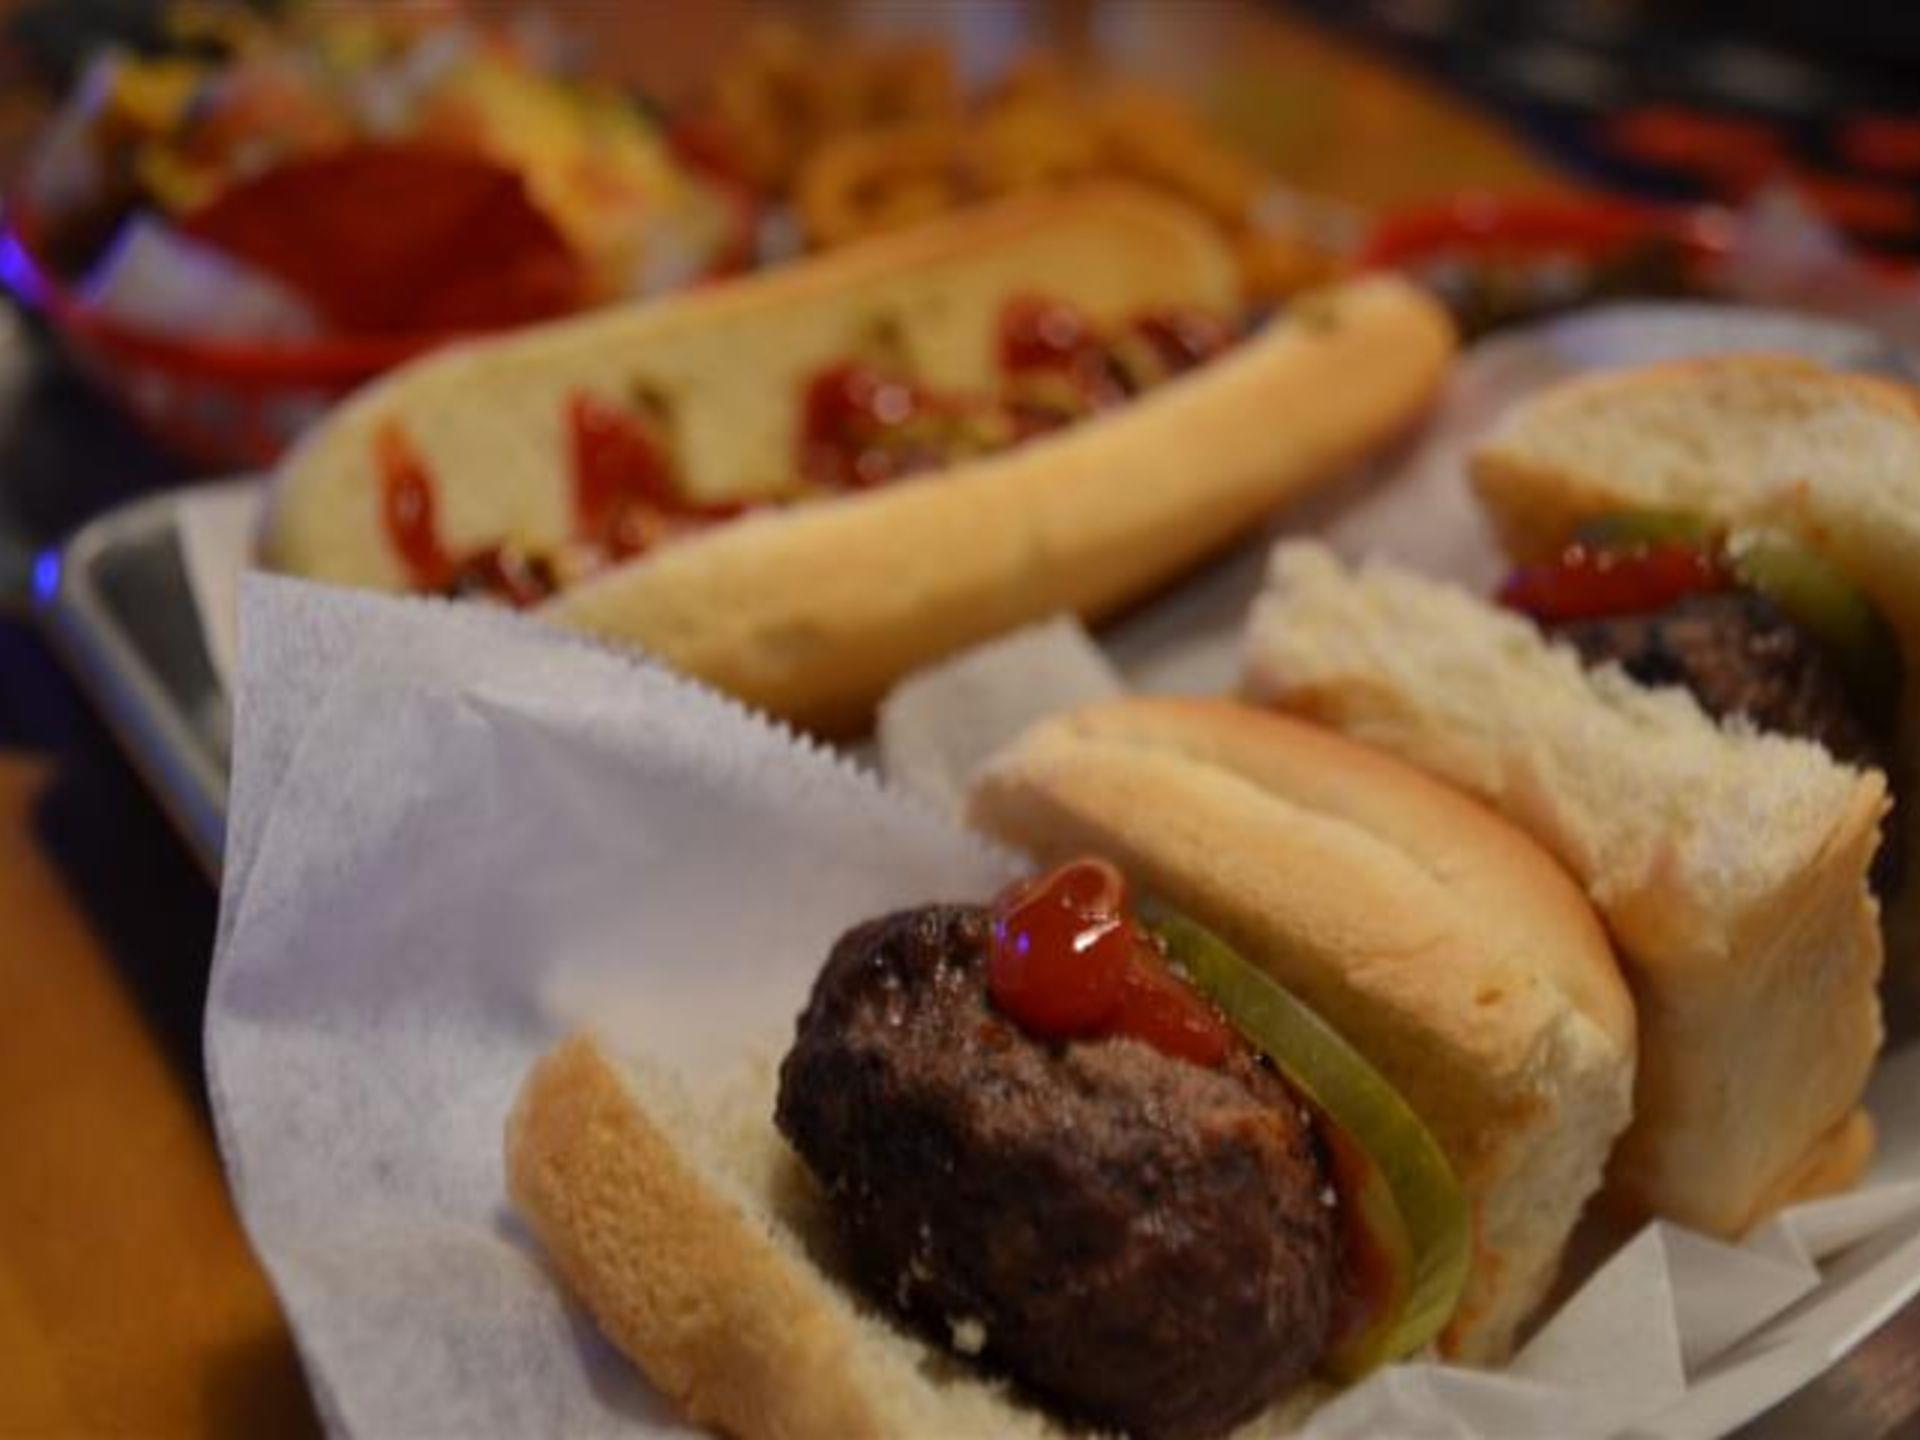 Close up of sliders with a hot dog and fries blurred in the background